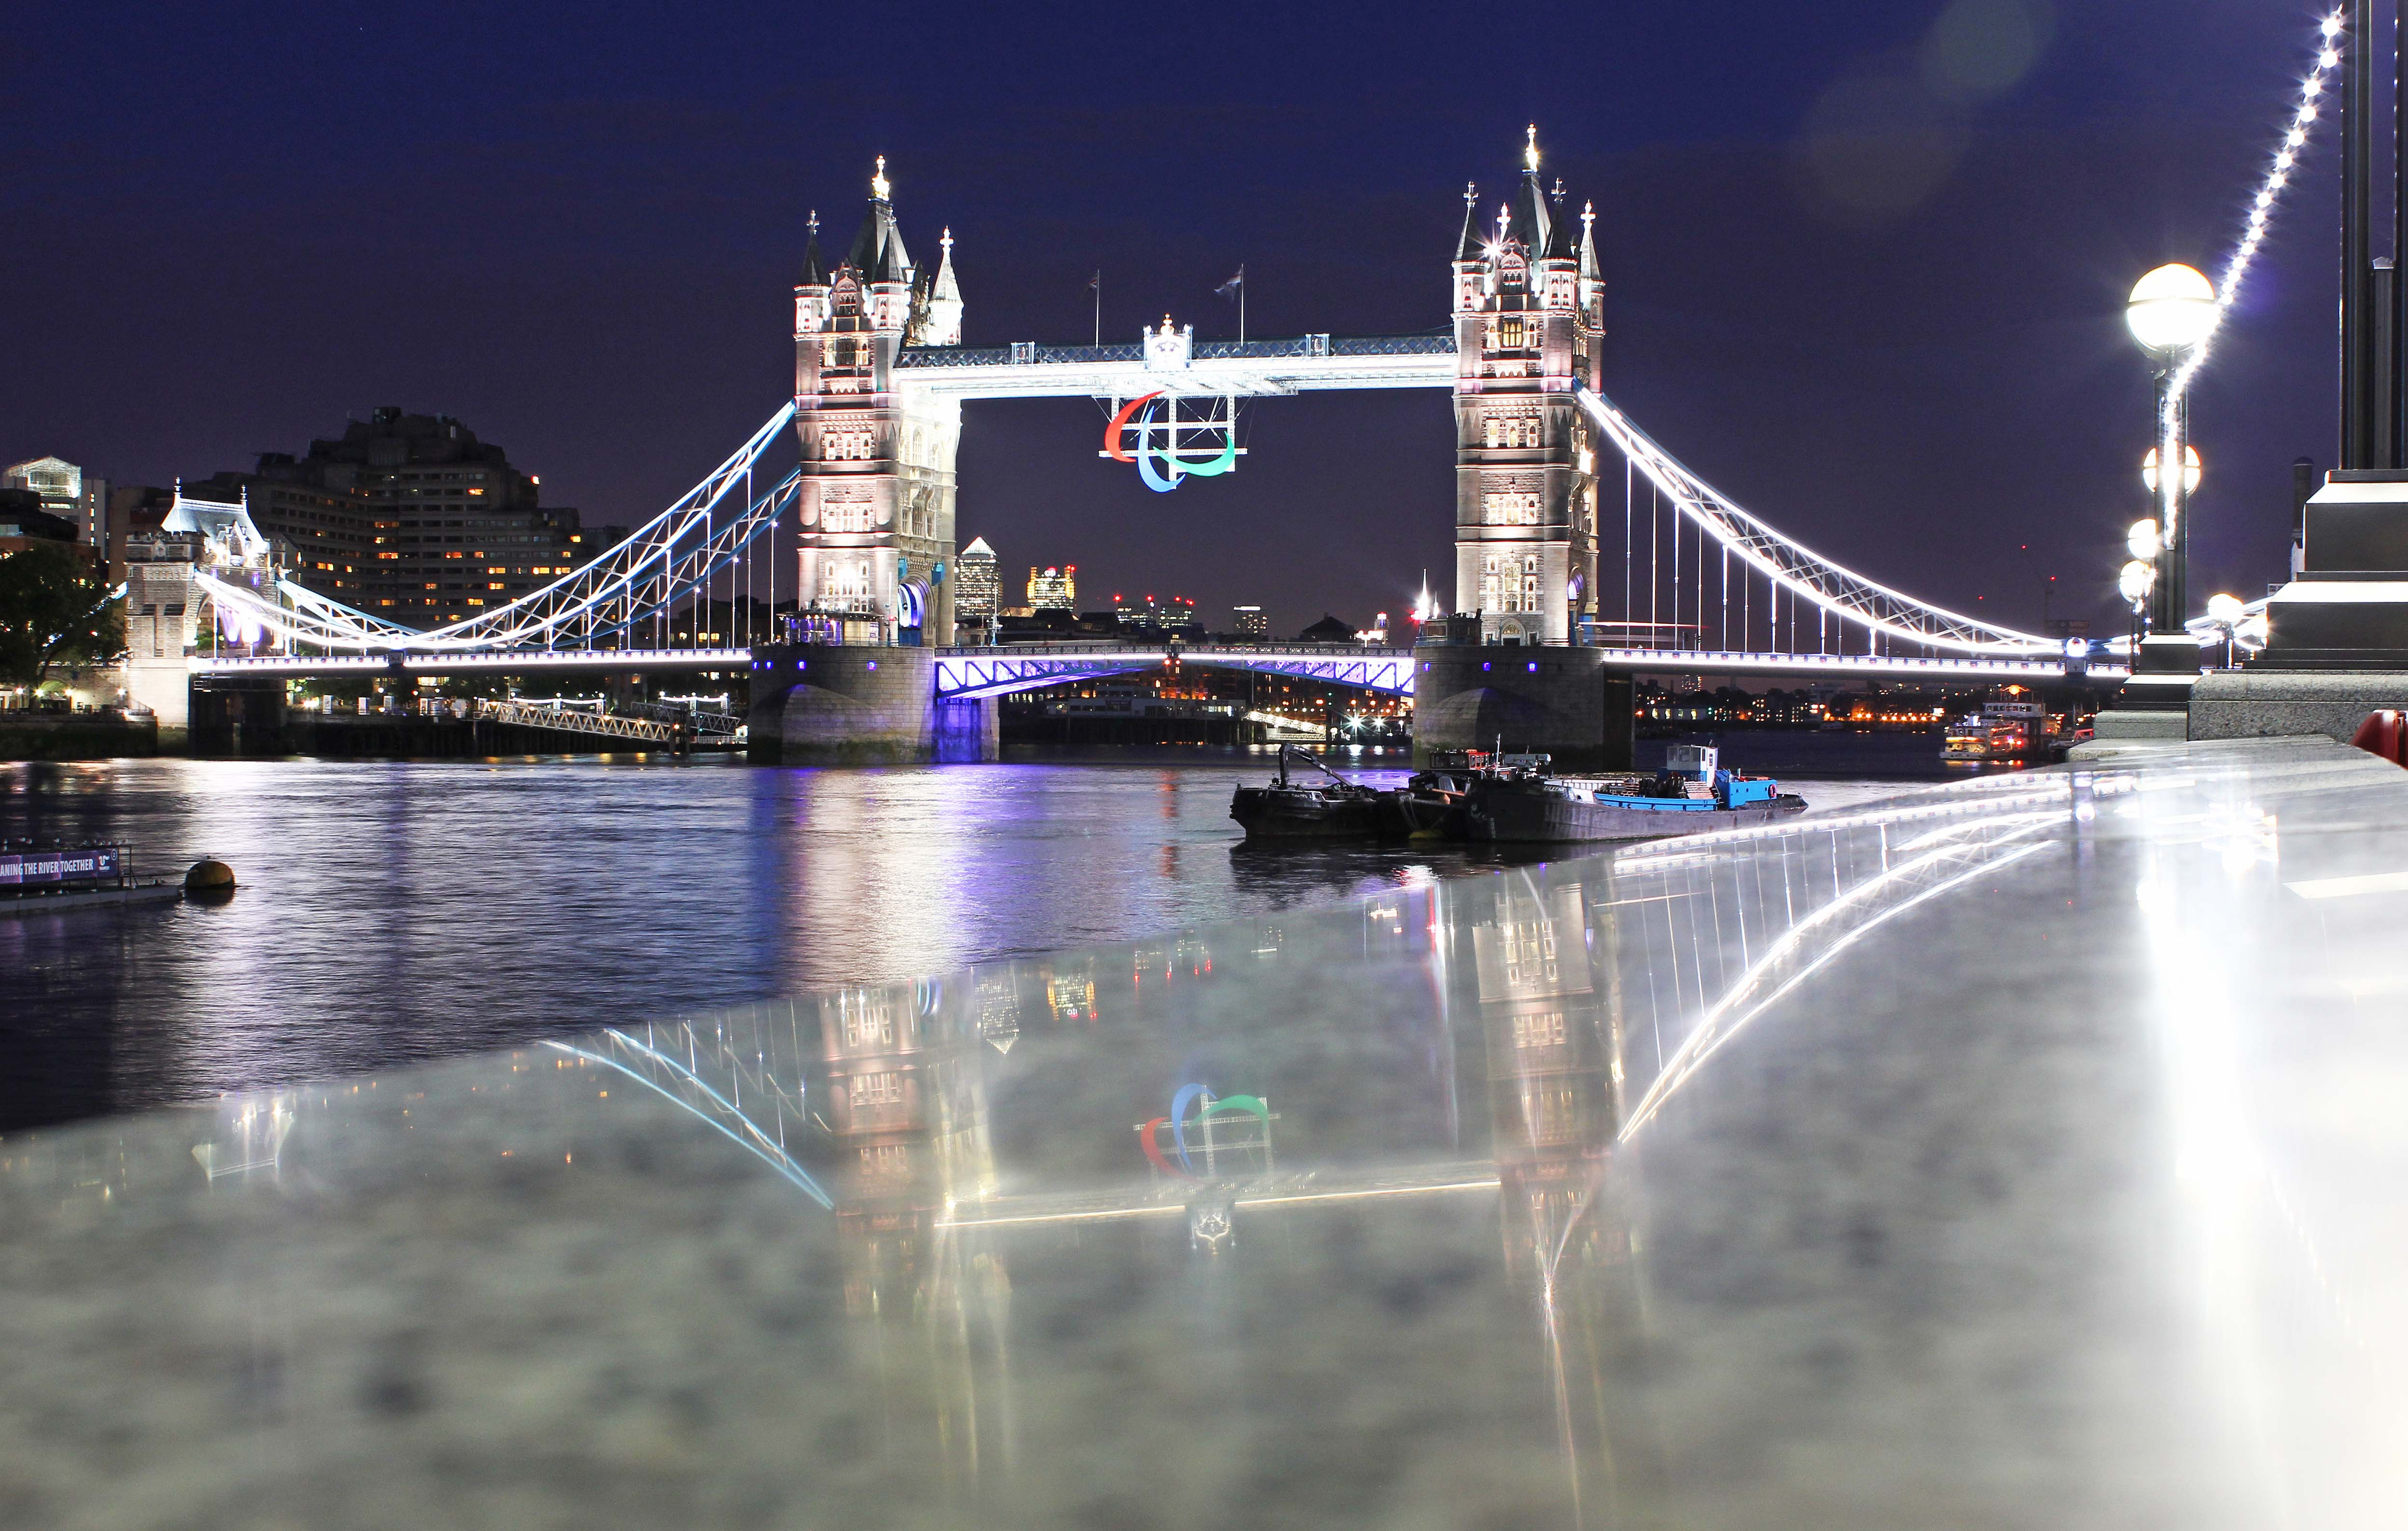 nighttimetowerbridge